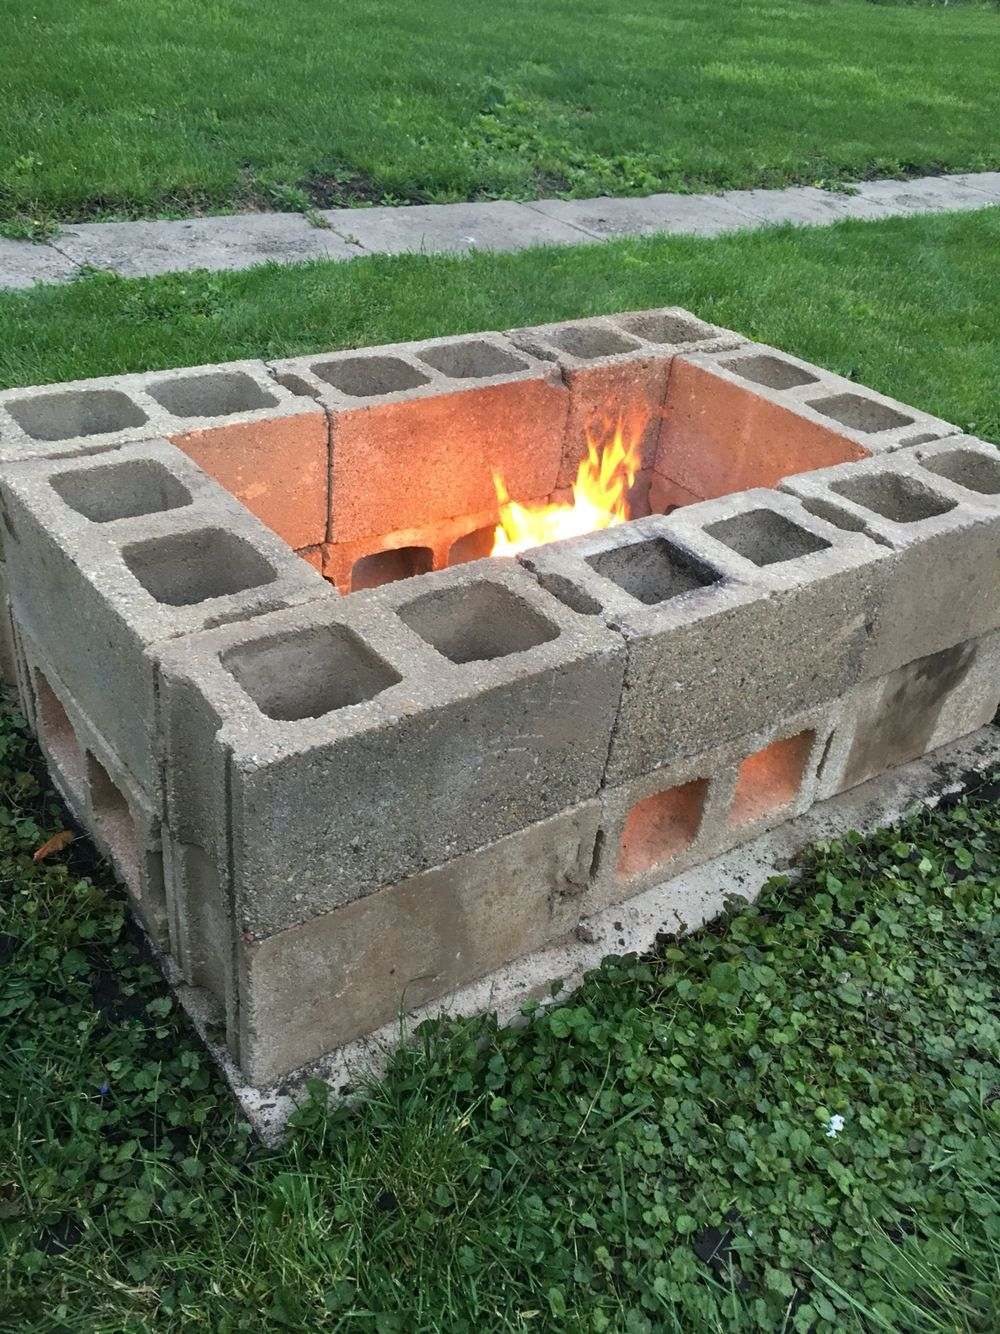 20 attractive diy firepit ideas asador diy fireplace ideas outdoor firepit on a budget do it yourself firepit projects and solutioingenieria Choice Image